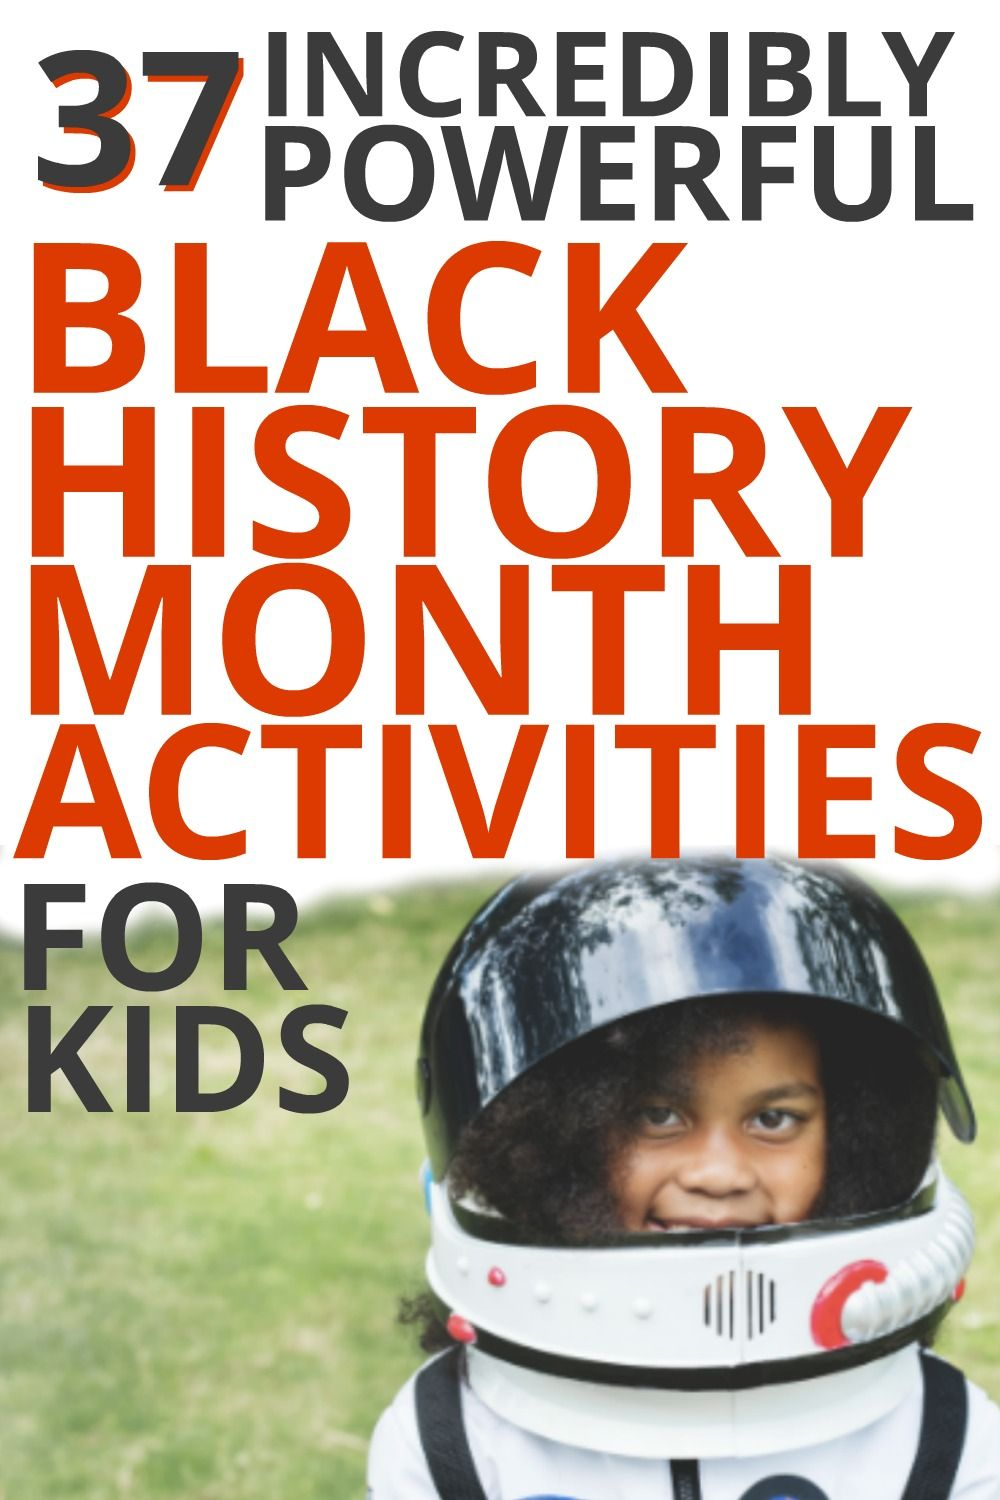 Photo of 37 Black History Month Activities for Kids (For Year 'Round Learning!) [UPDATED]